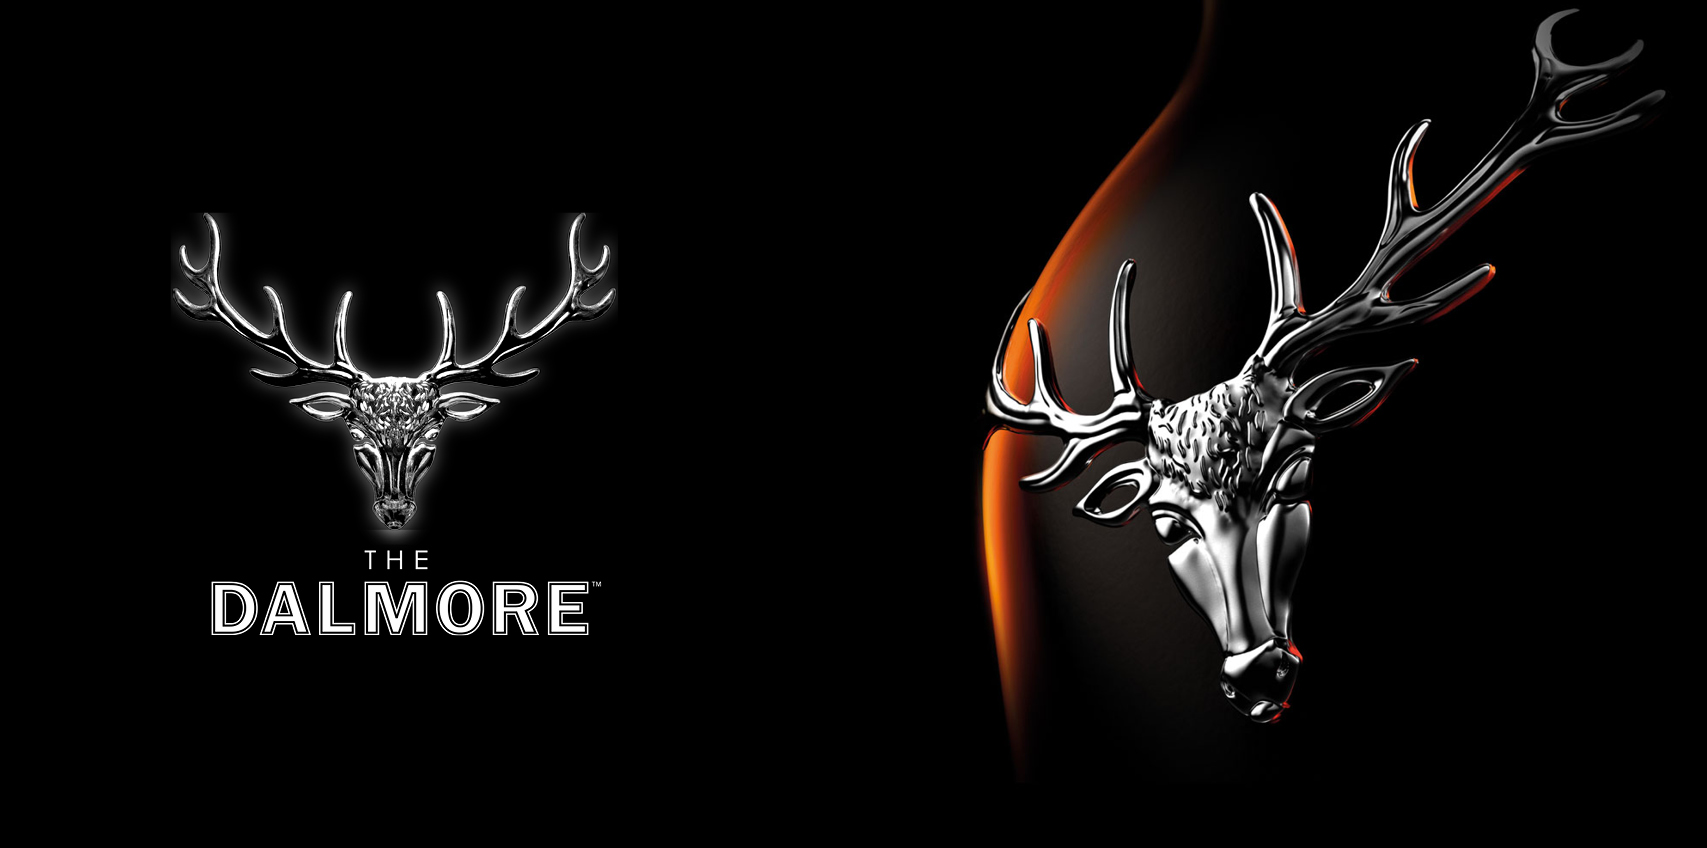 brand-page-banner-dalmore.jpg